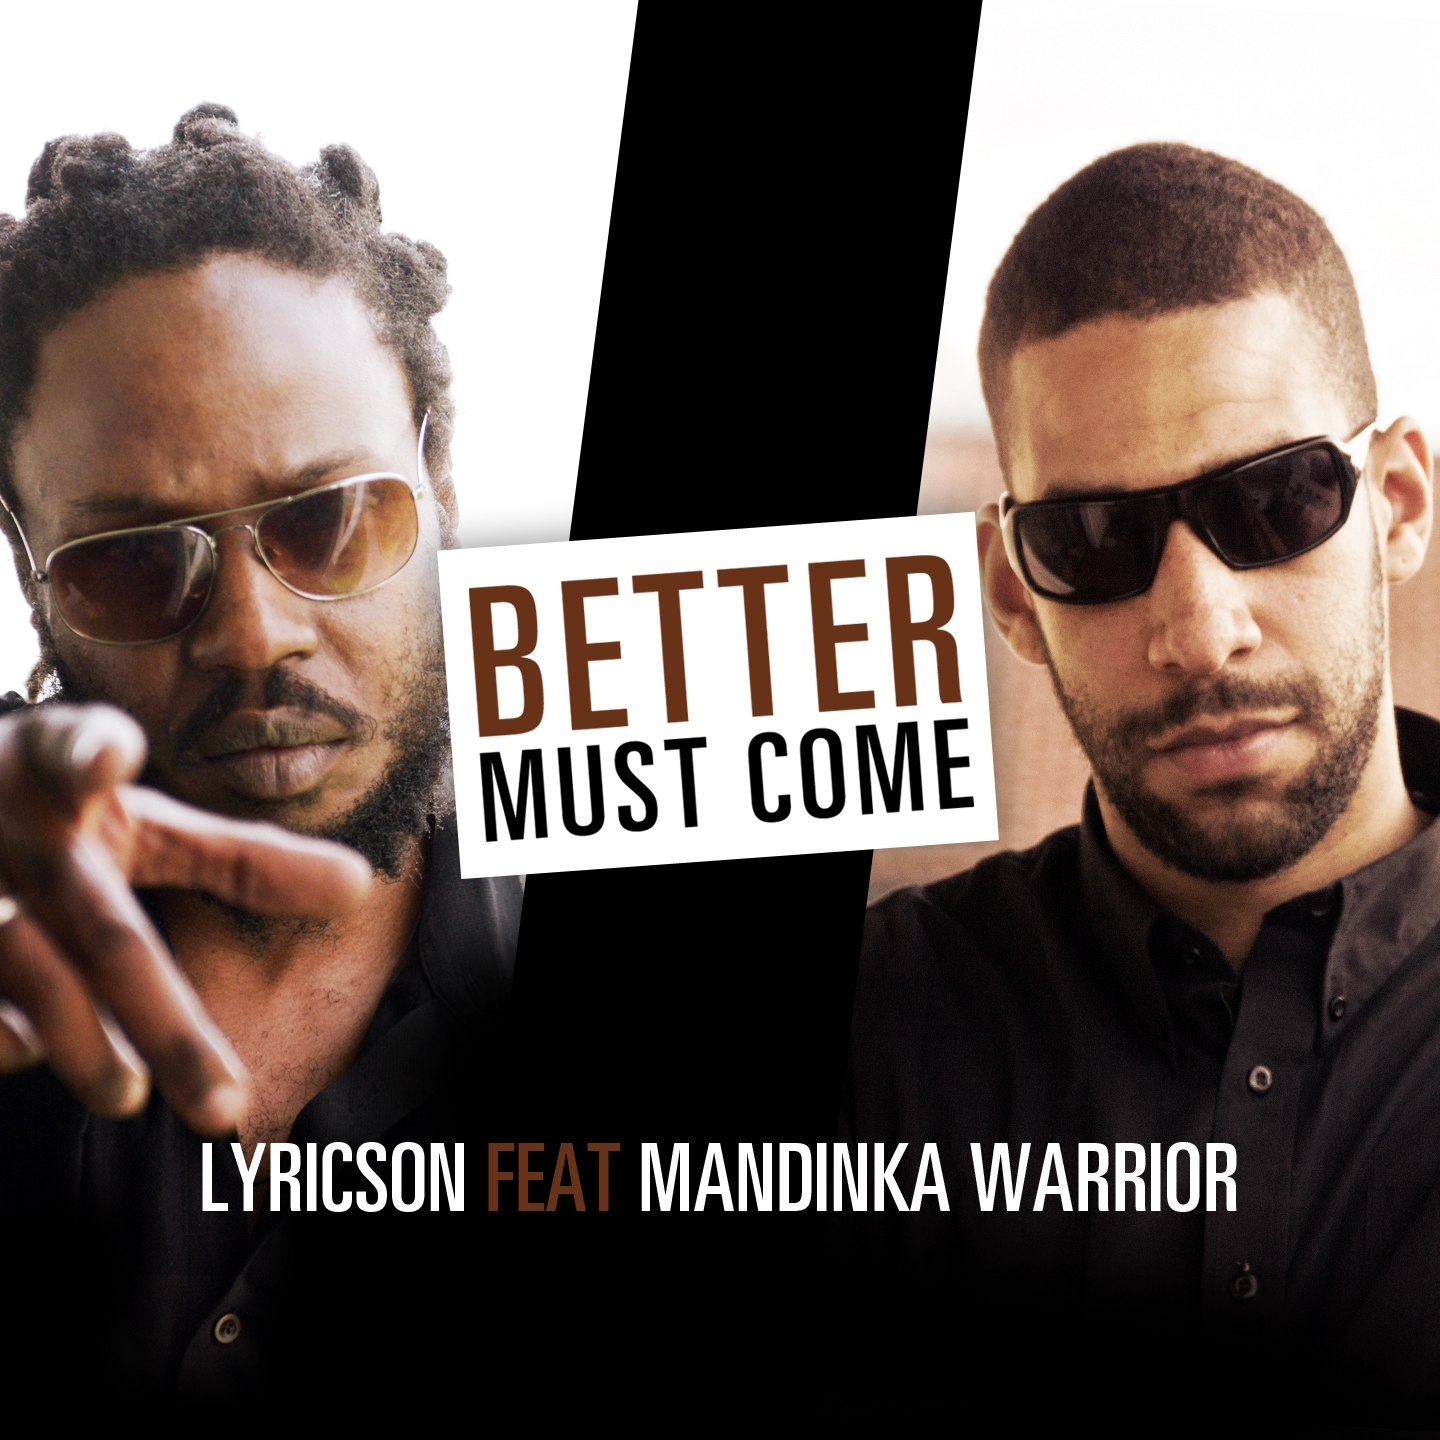 Lyricson « Better must come » feat. Mandinka Warrior